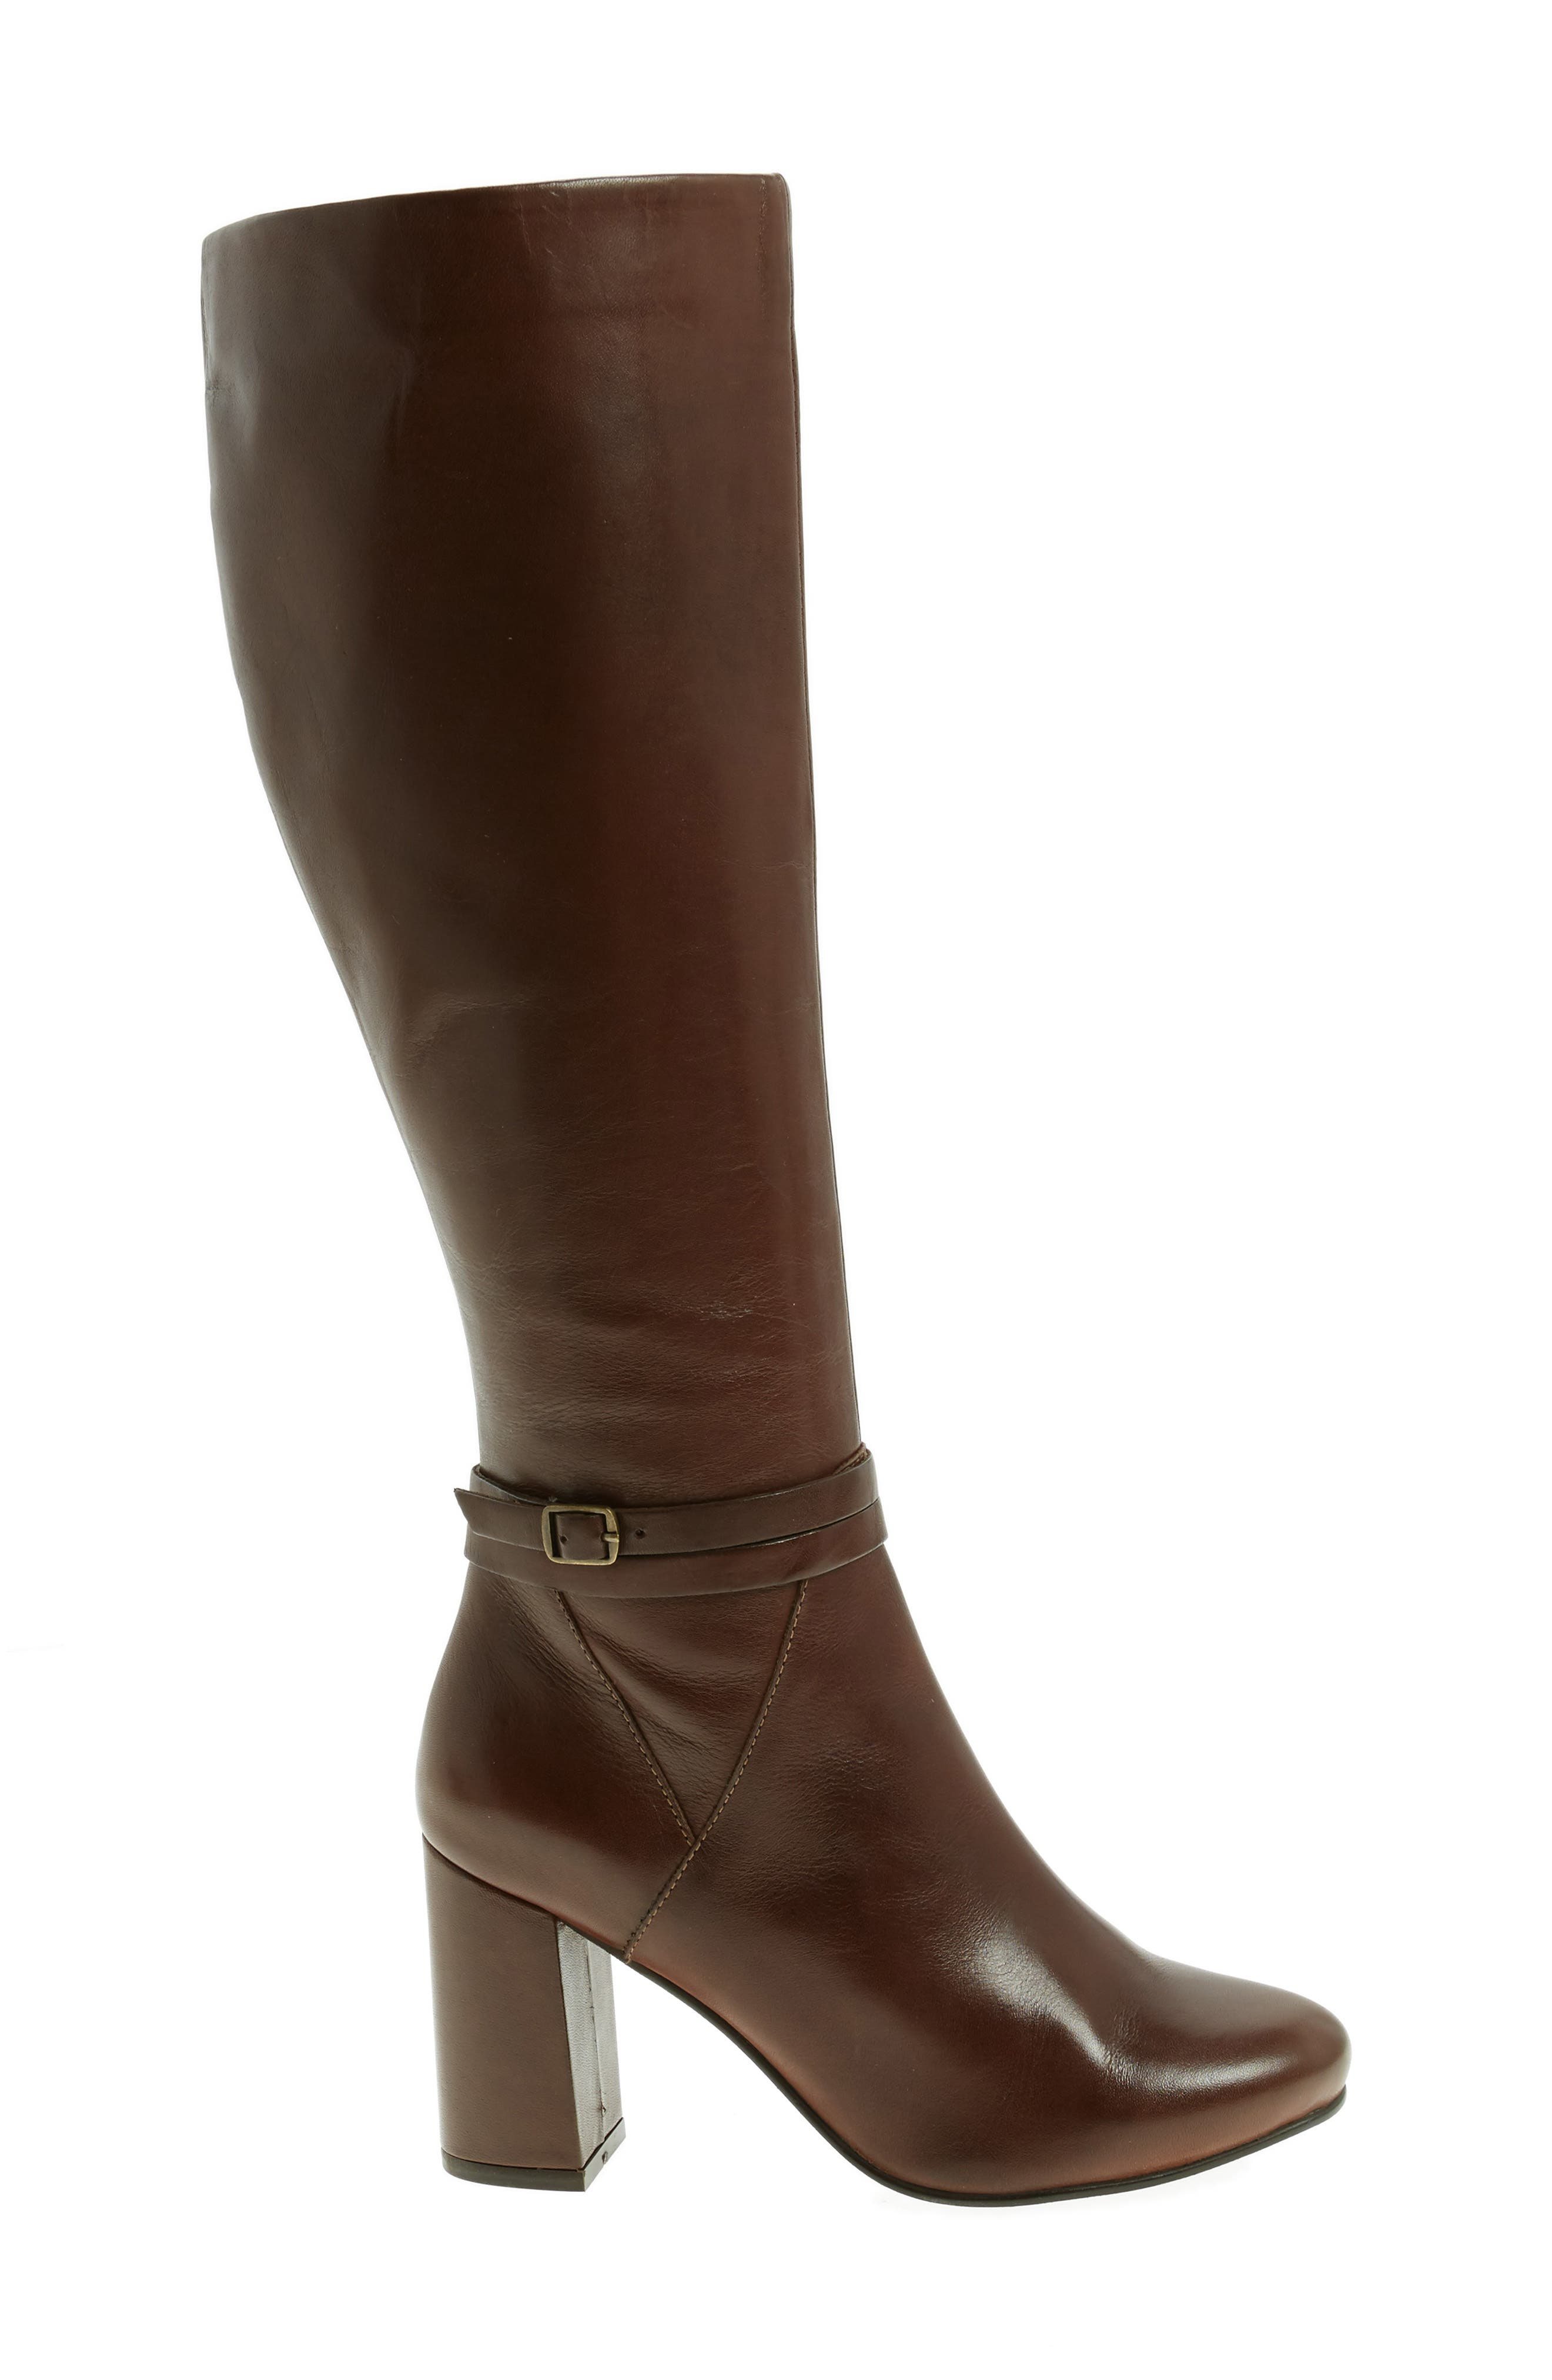 Ovation Knee High Boot,                             Alternate thumbnail 6, color,